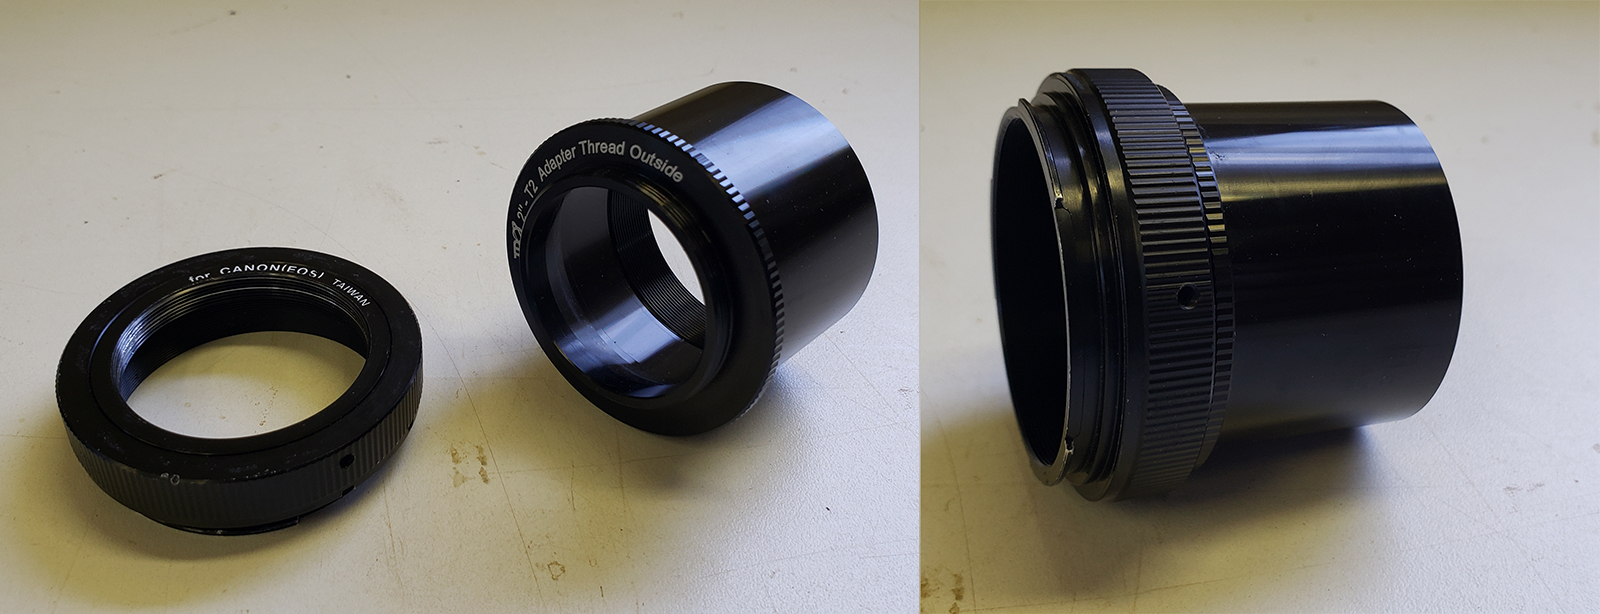 "A T-Ring & a 2"" threaded T-Adapter - together they can attach a DSLR to a telescope"